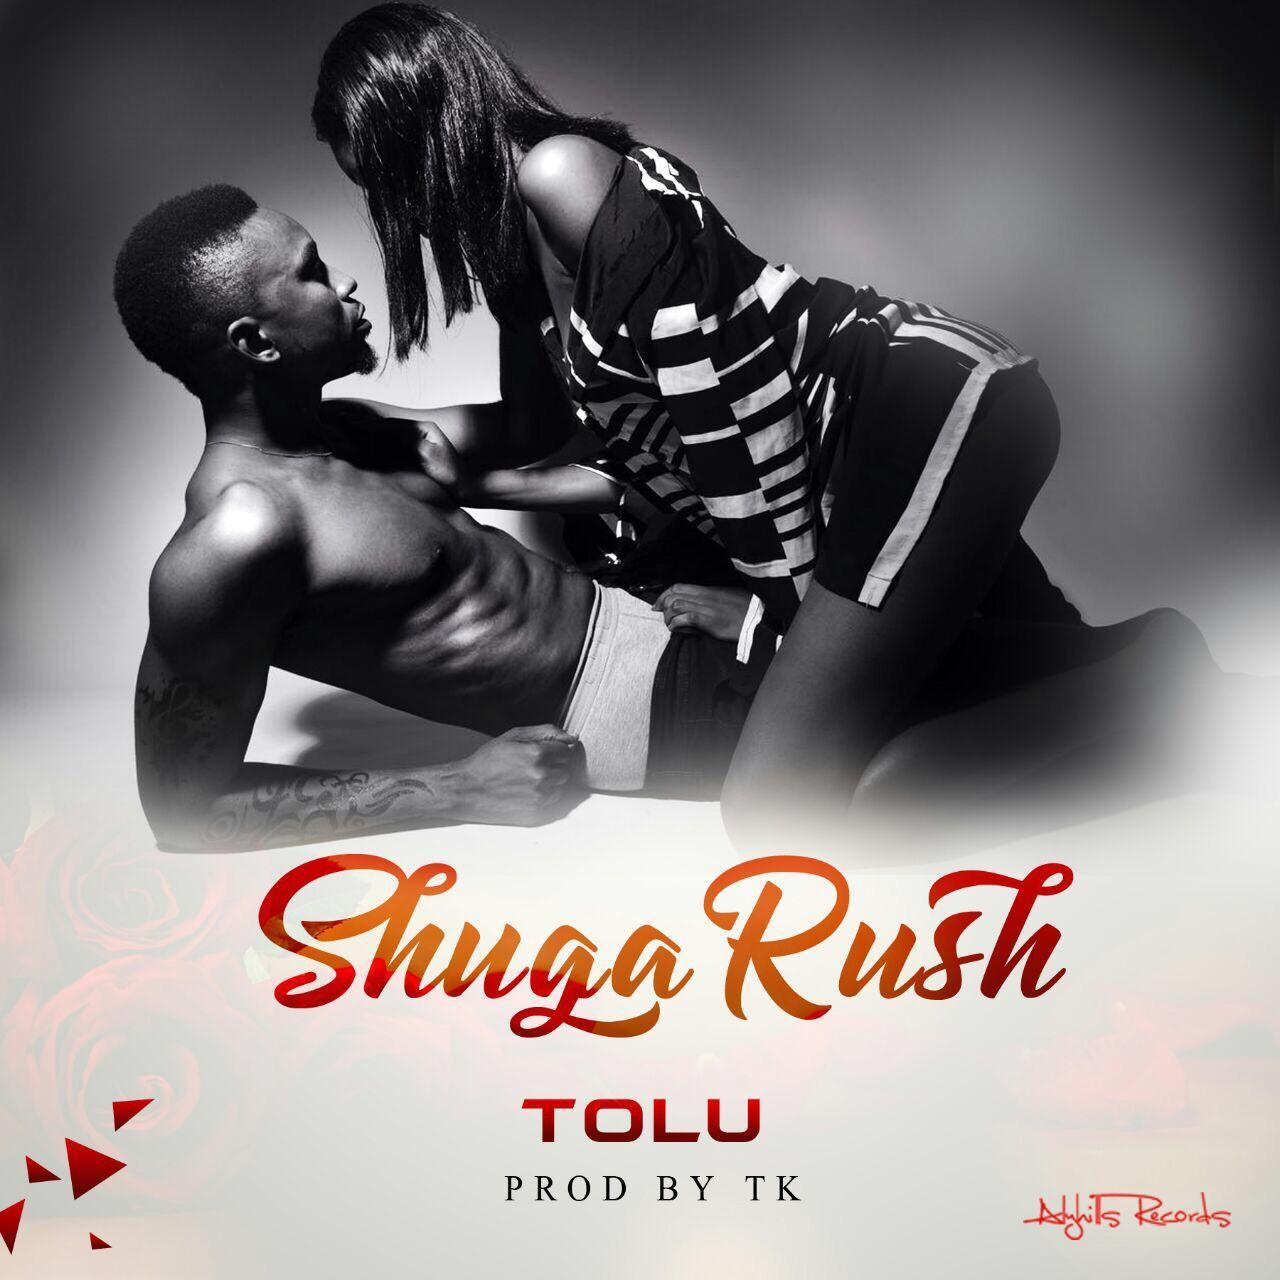 Tolu - Shuga Rush [ViDeo]